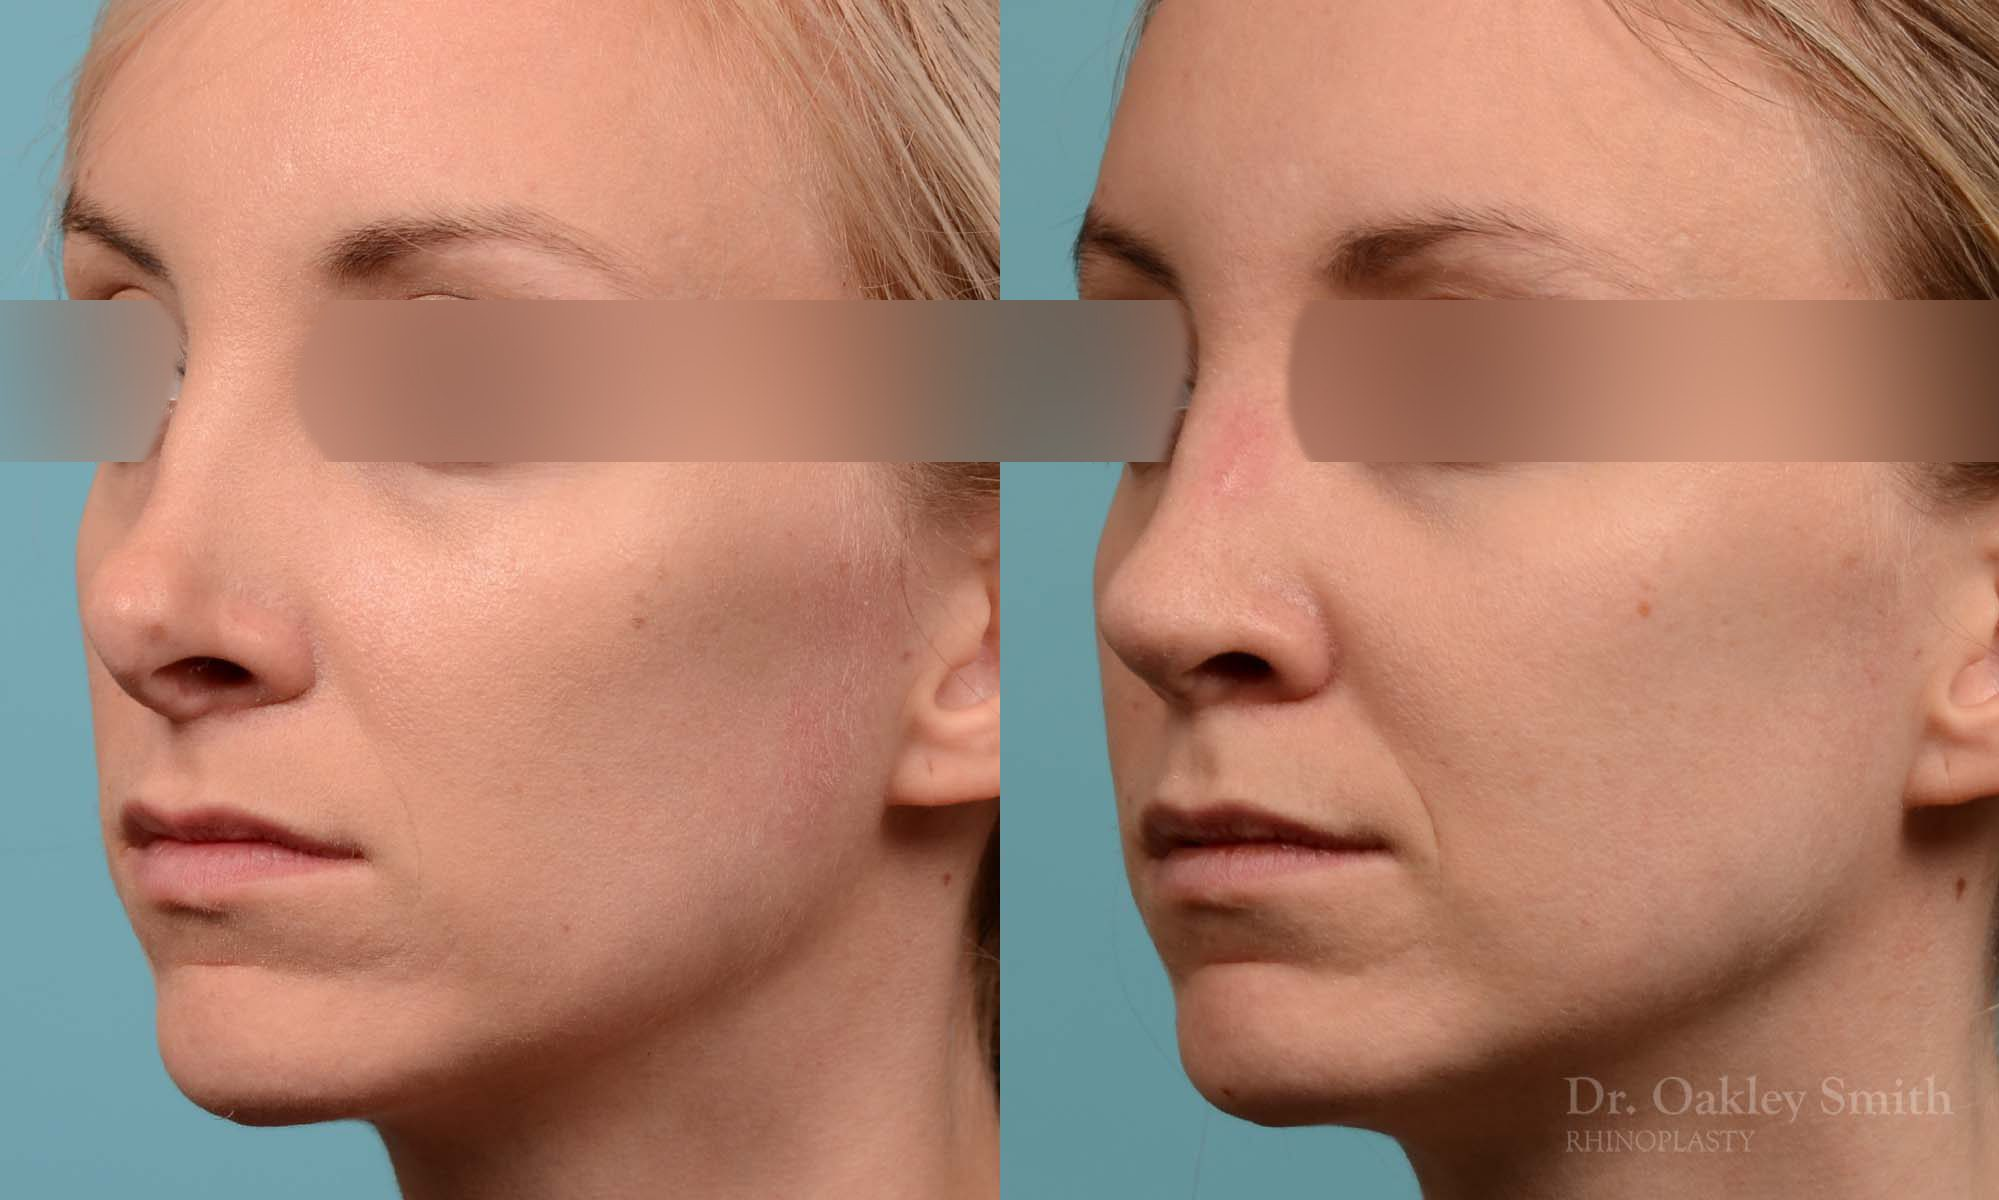 Female bridge rhinoplasty